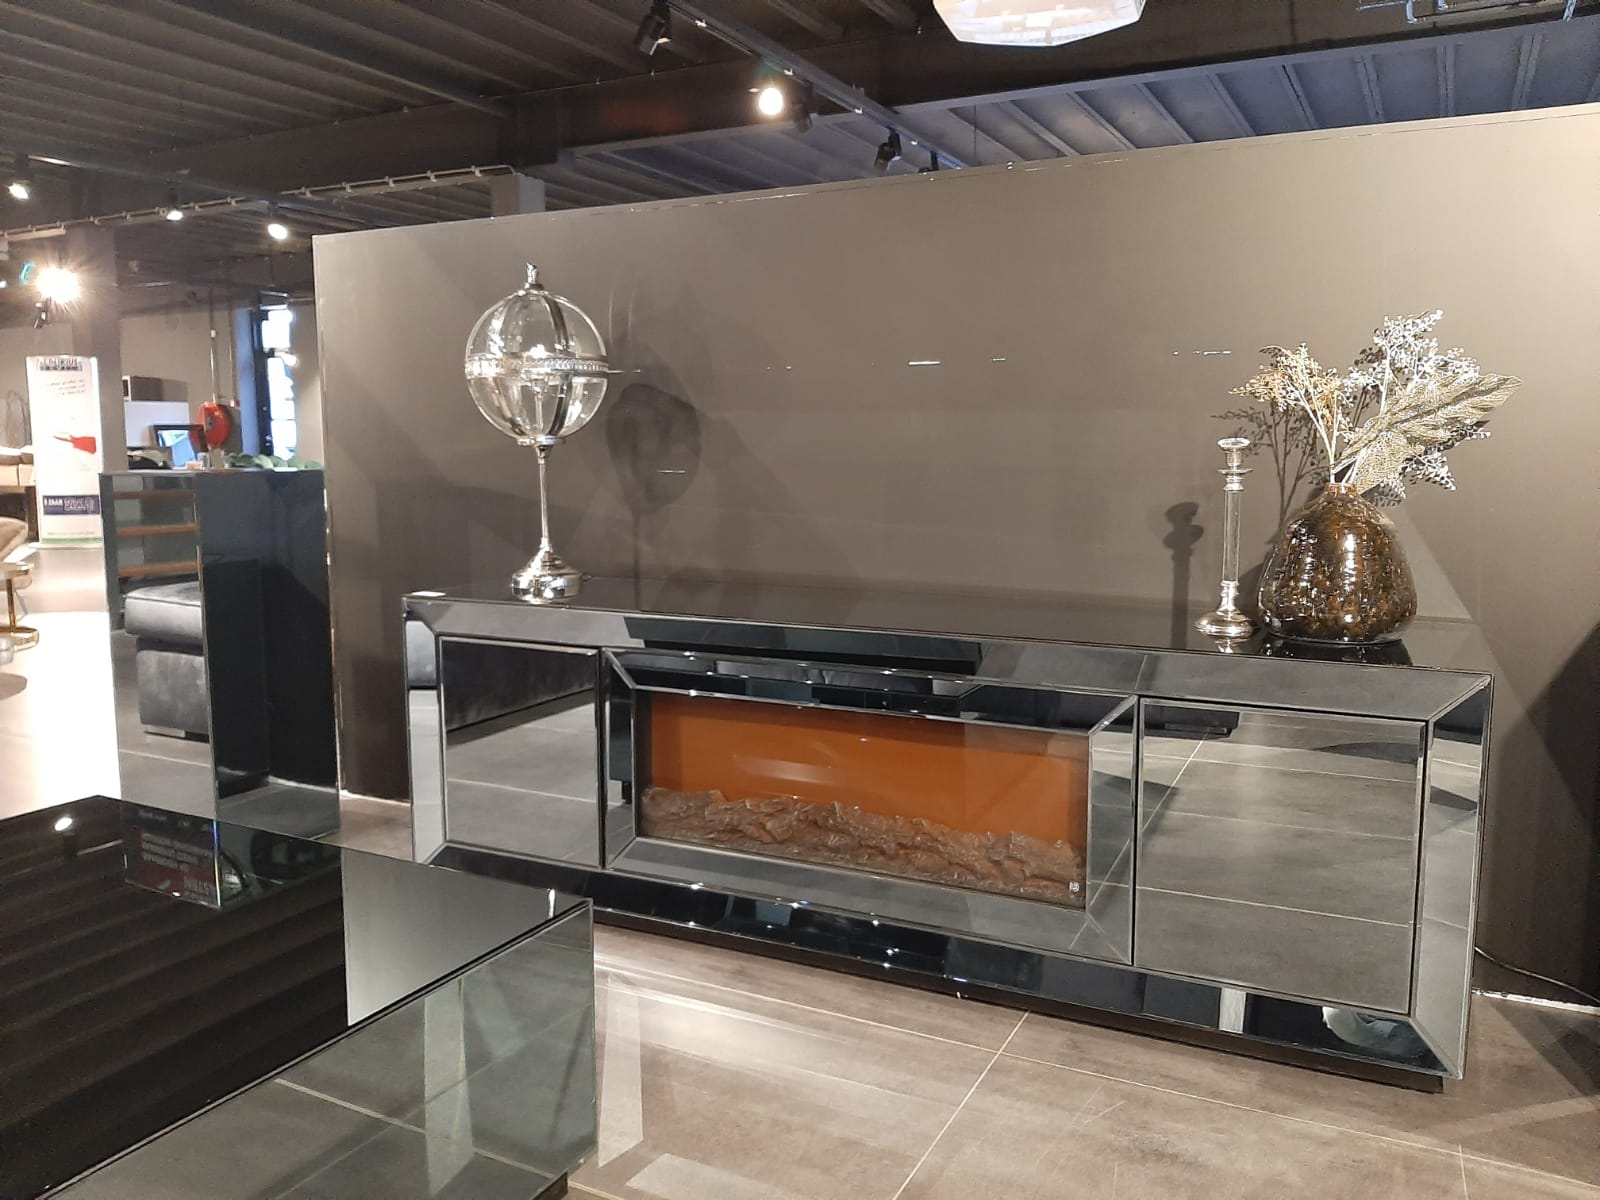 Casa Mirror/Spigel Sfeerhaard Tv unit